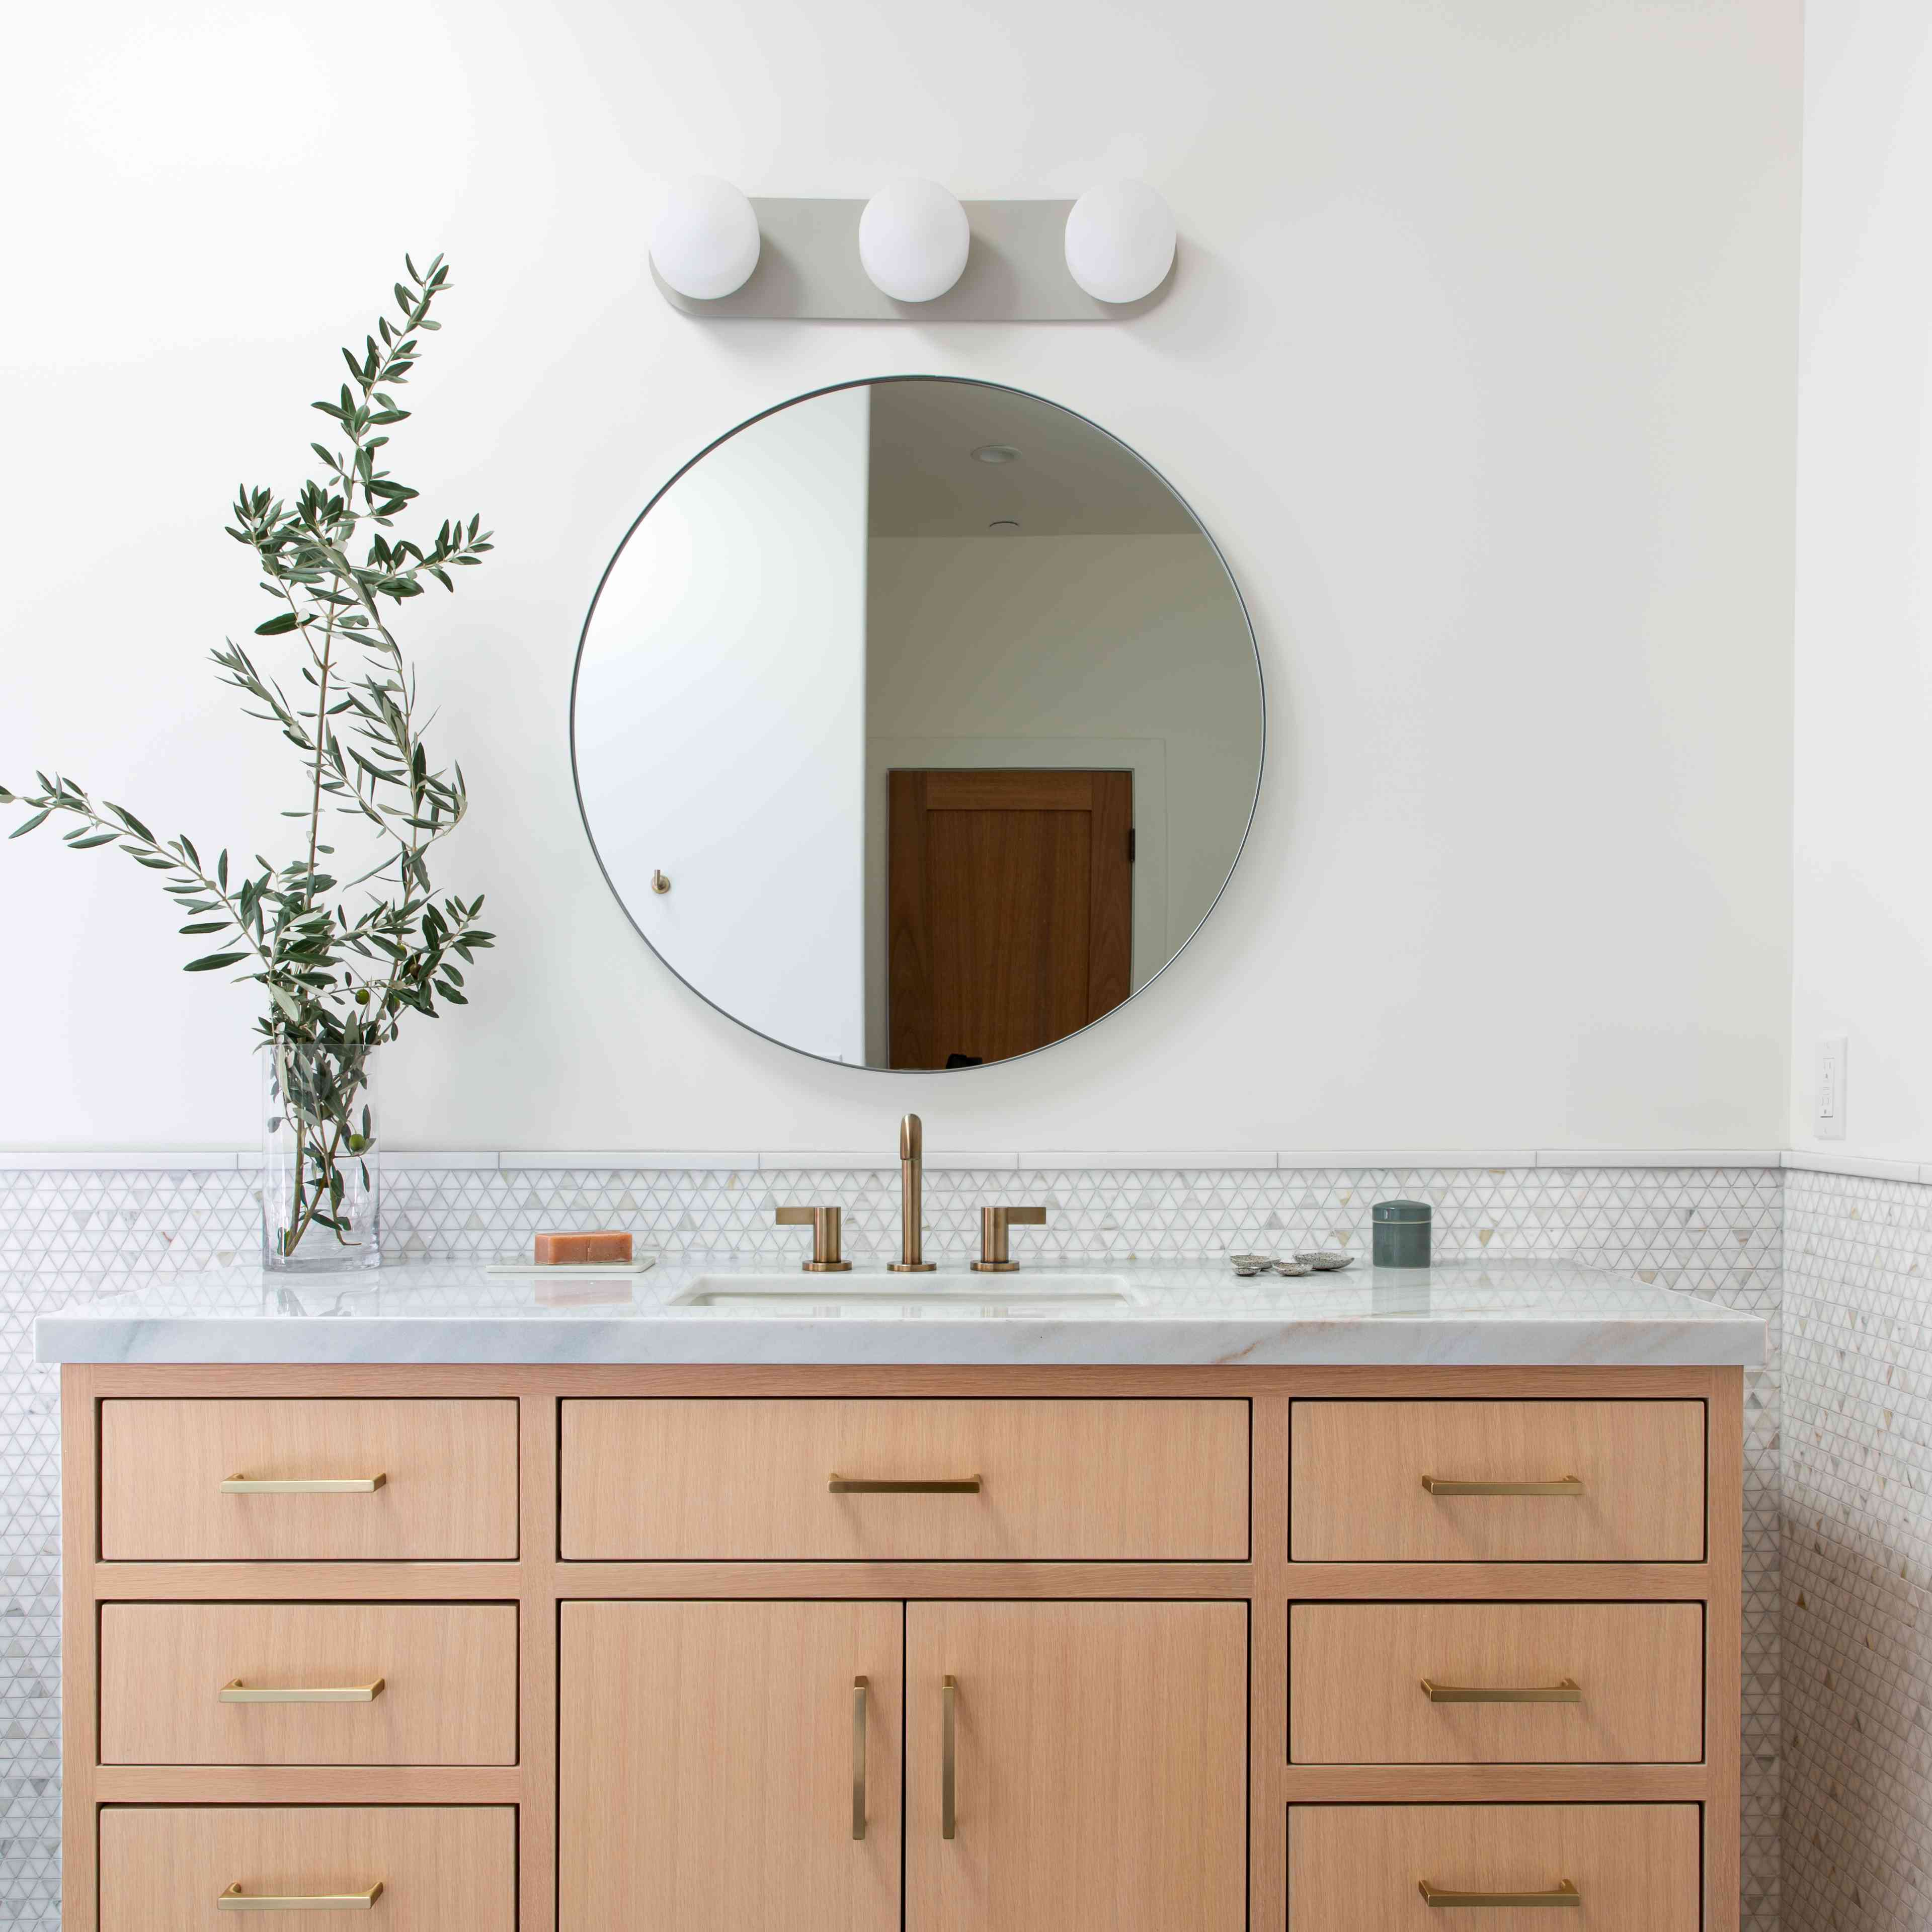 Neutral bathroom vanity with plant branches.